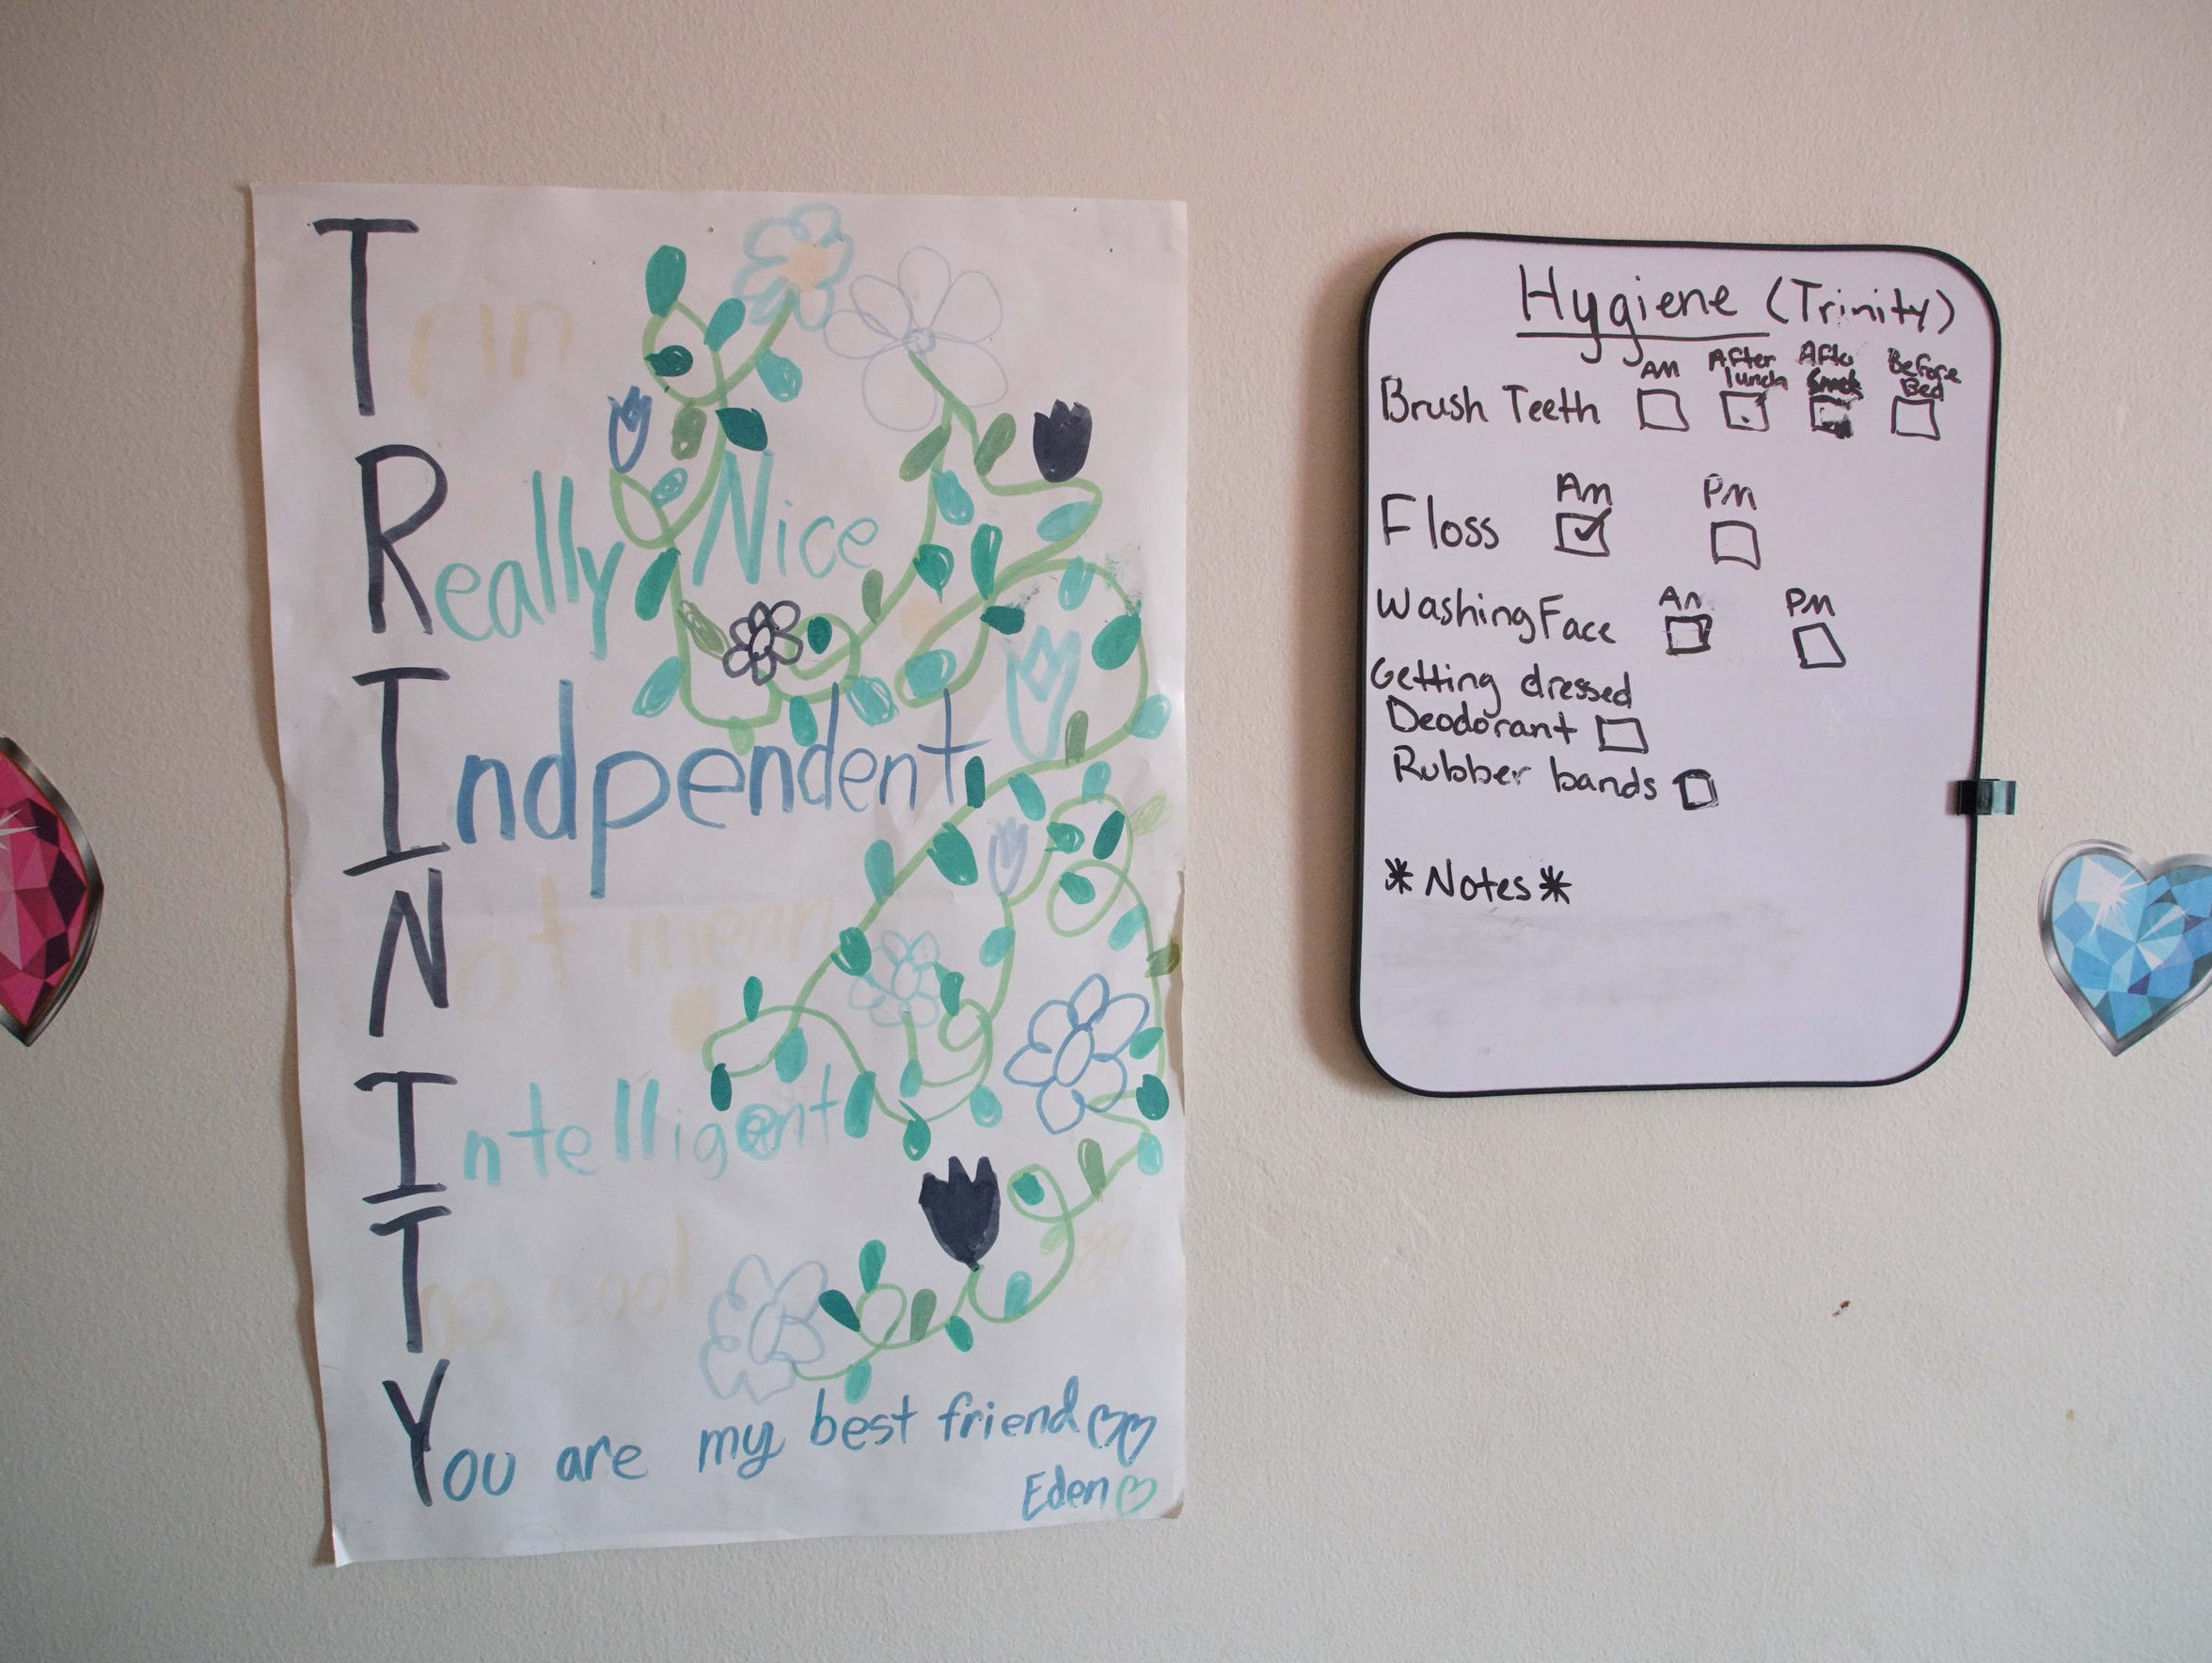 Artwork and a list of daily reminders hang on a wall